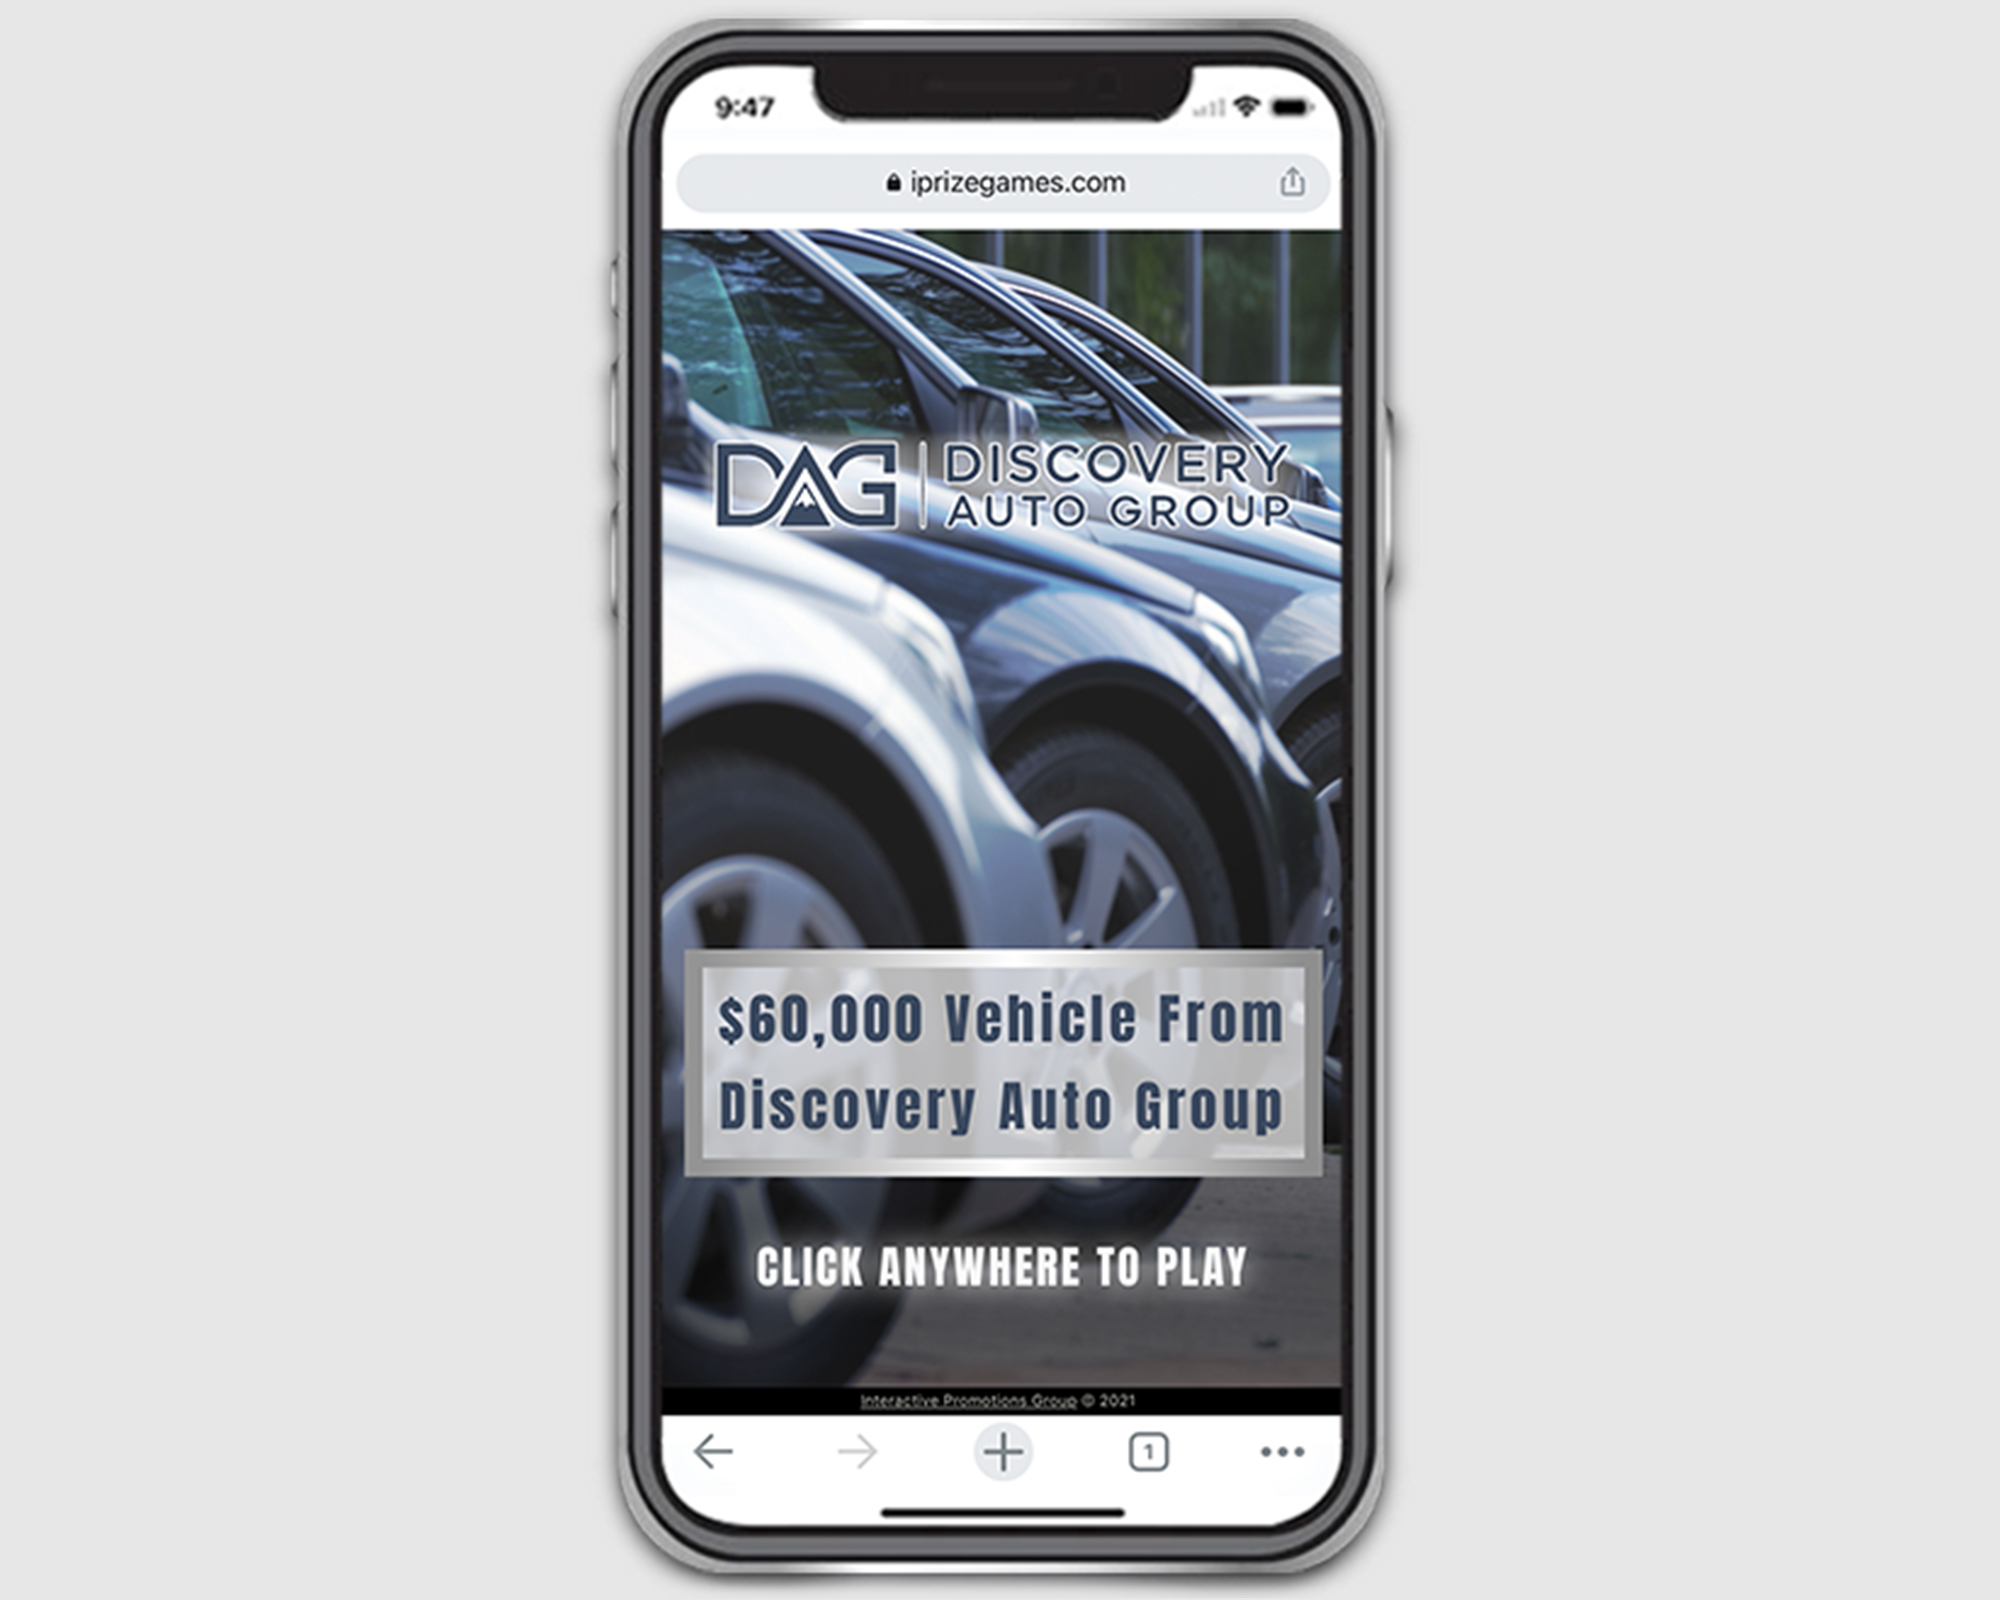 Discovery Auto Group